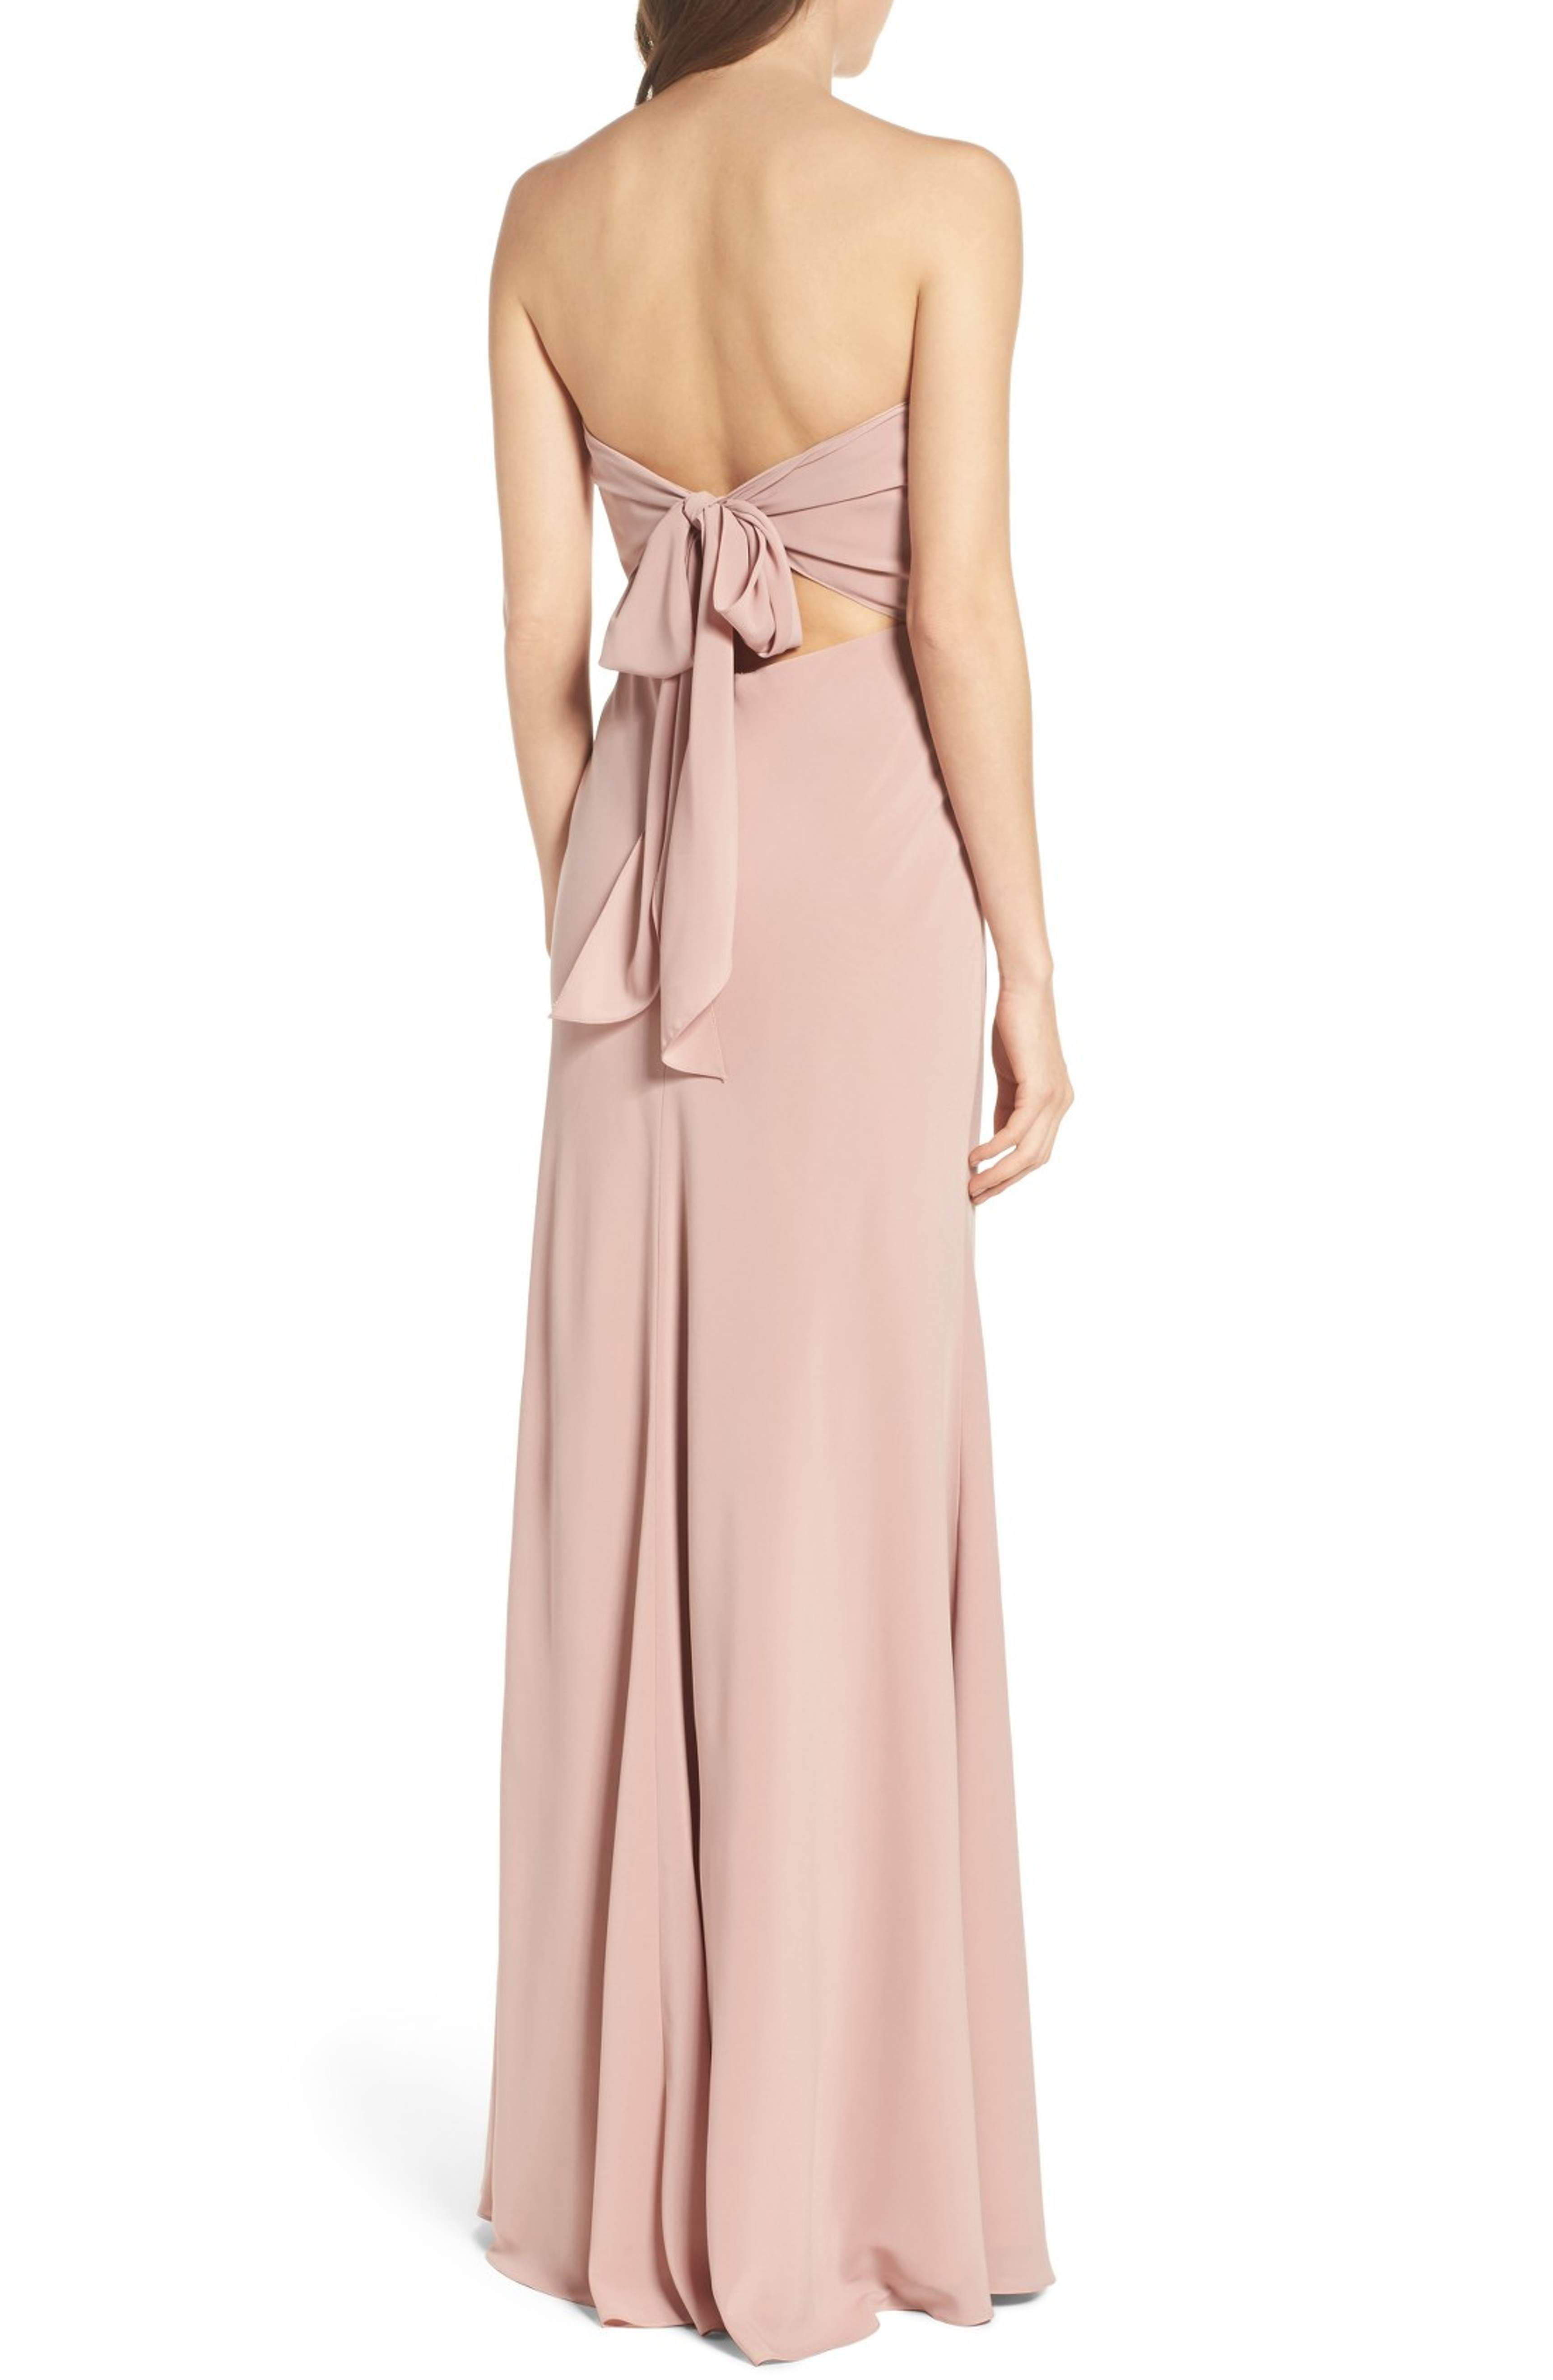 ebe1210c4ab Main Image - Jenny Yoo Kylie Tie Back Strapless Gown